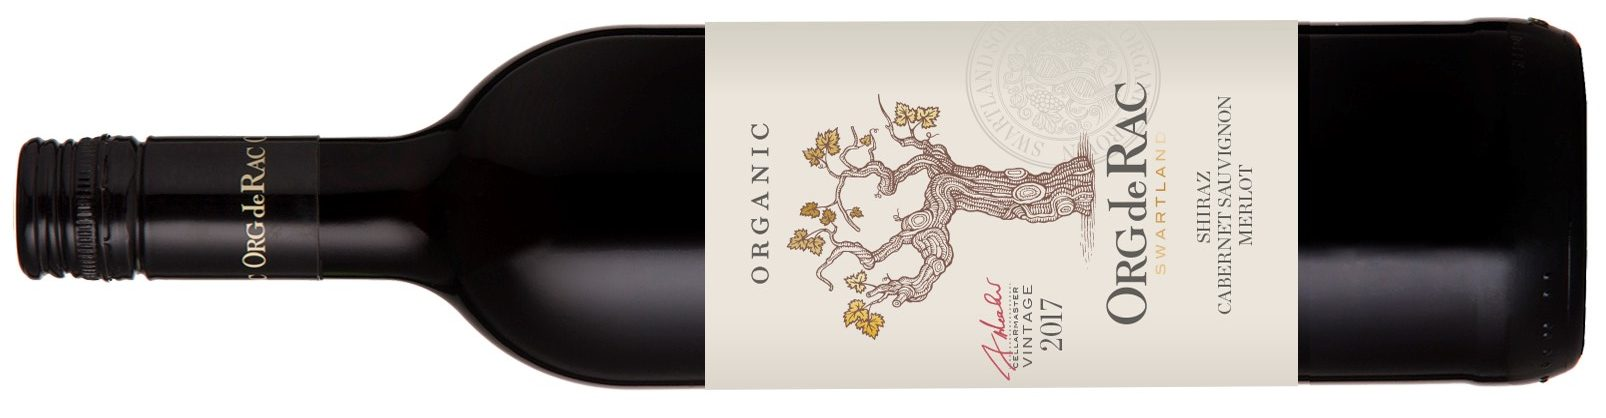 Org de Rac's Swedish Beauty Grabs Gold at Michelangelo Wine Awards photo